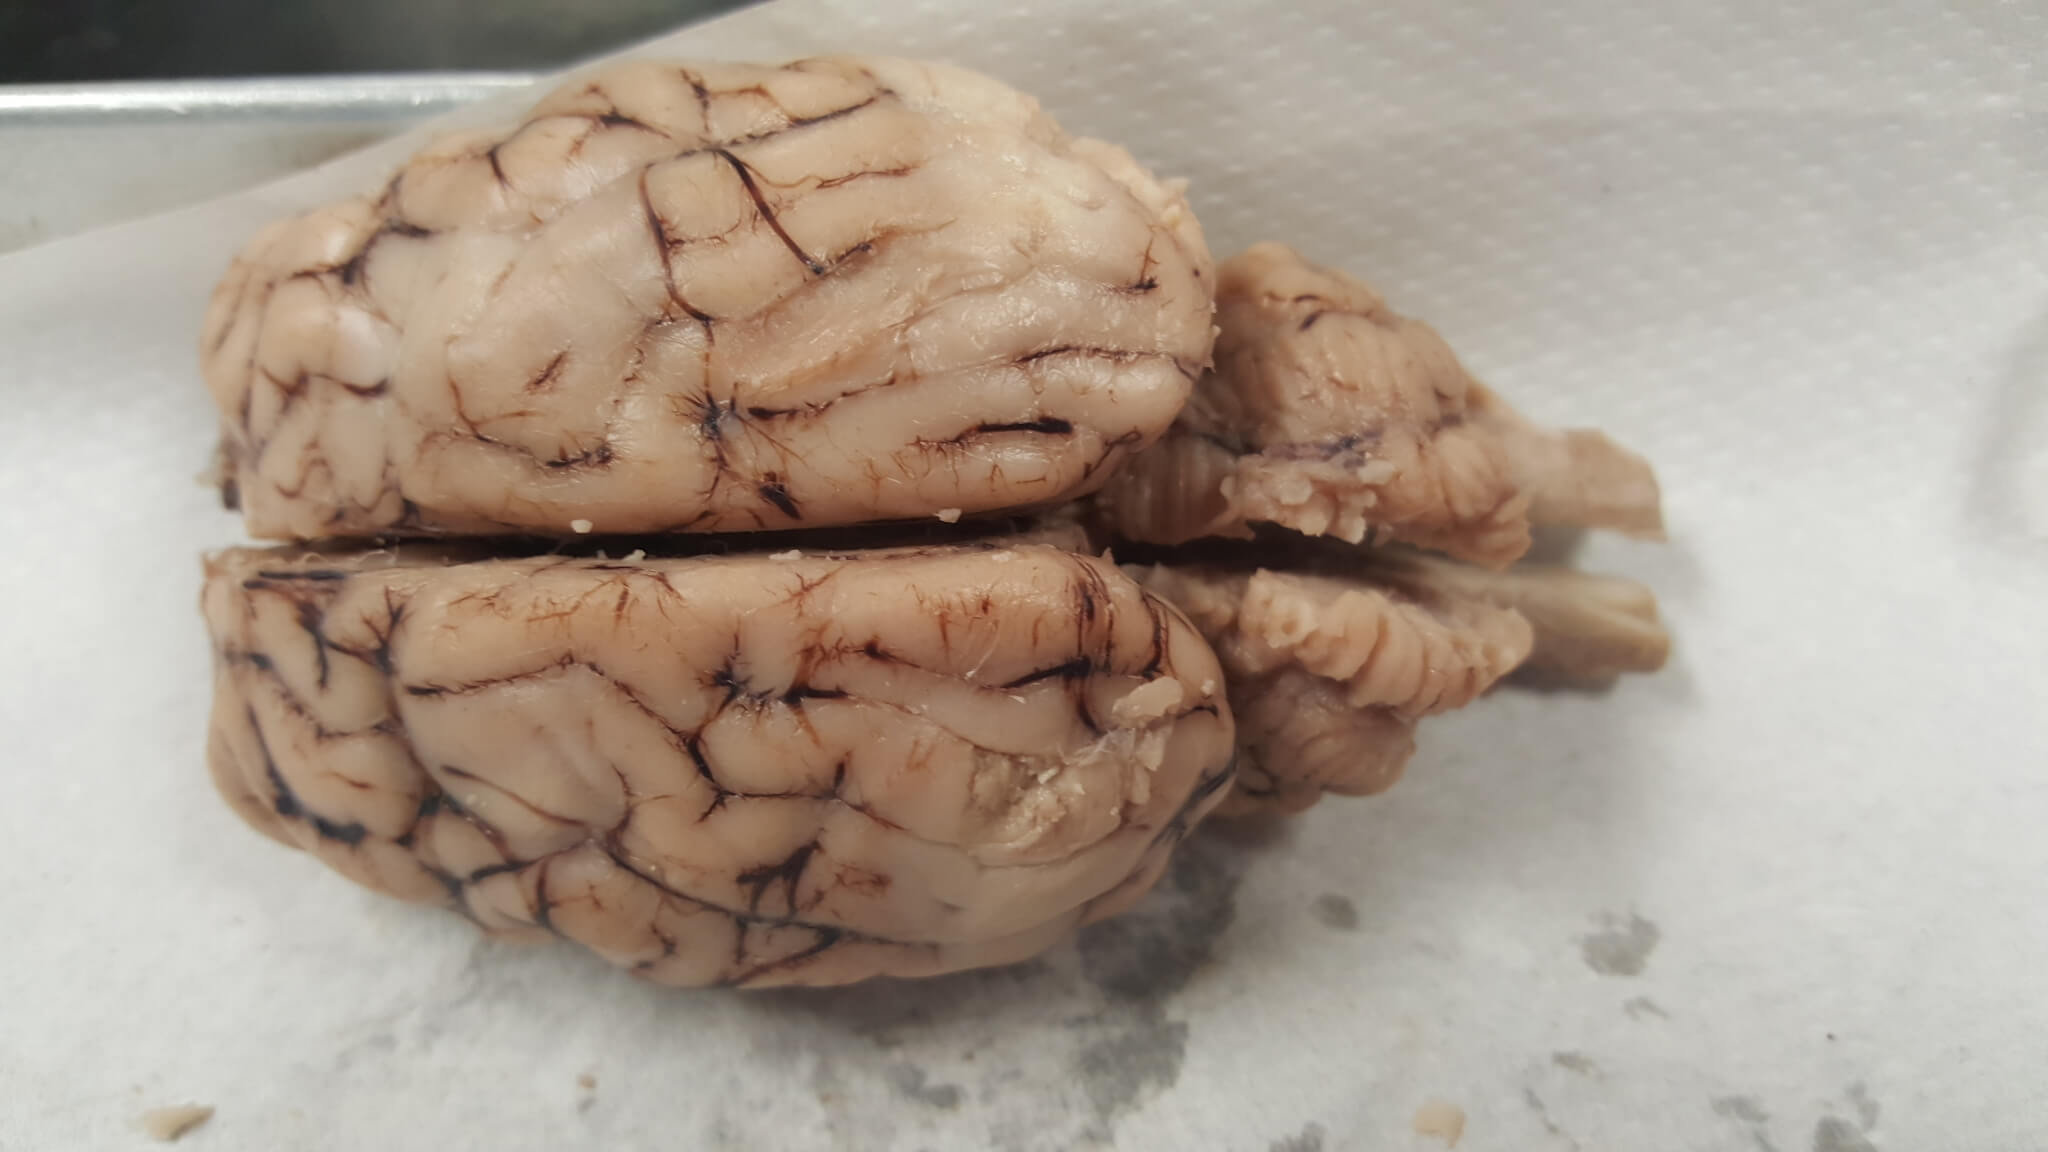 Sheep Brain Dissection | Anatomy Corner